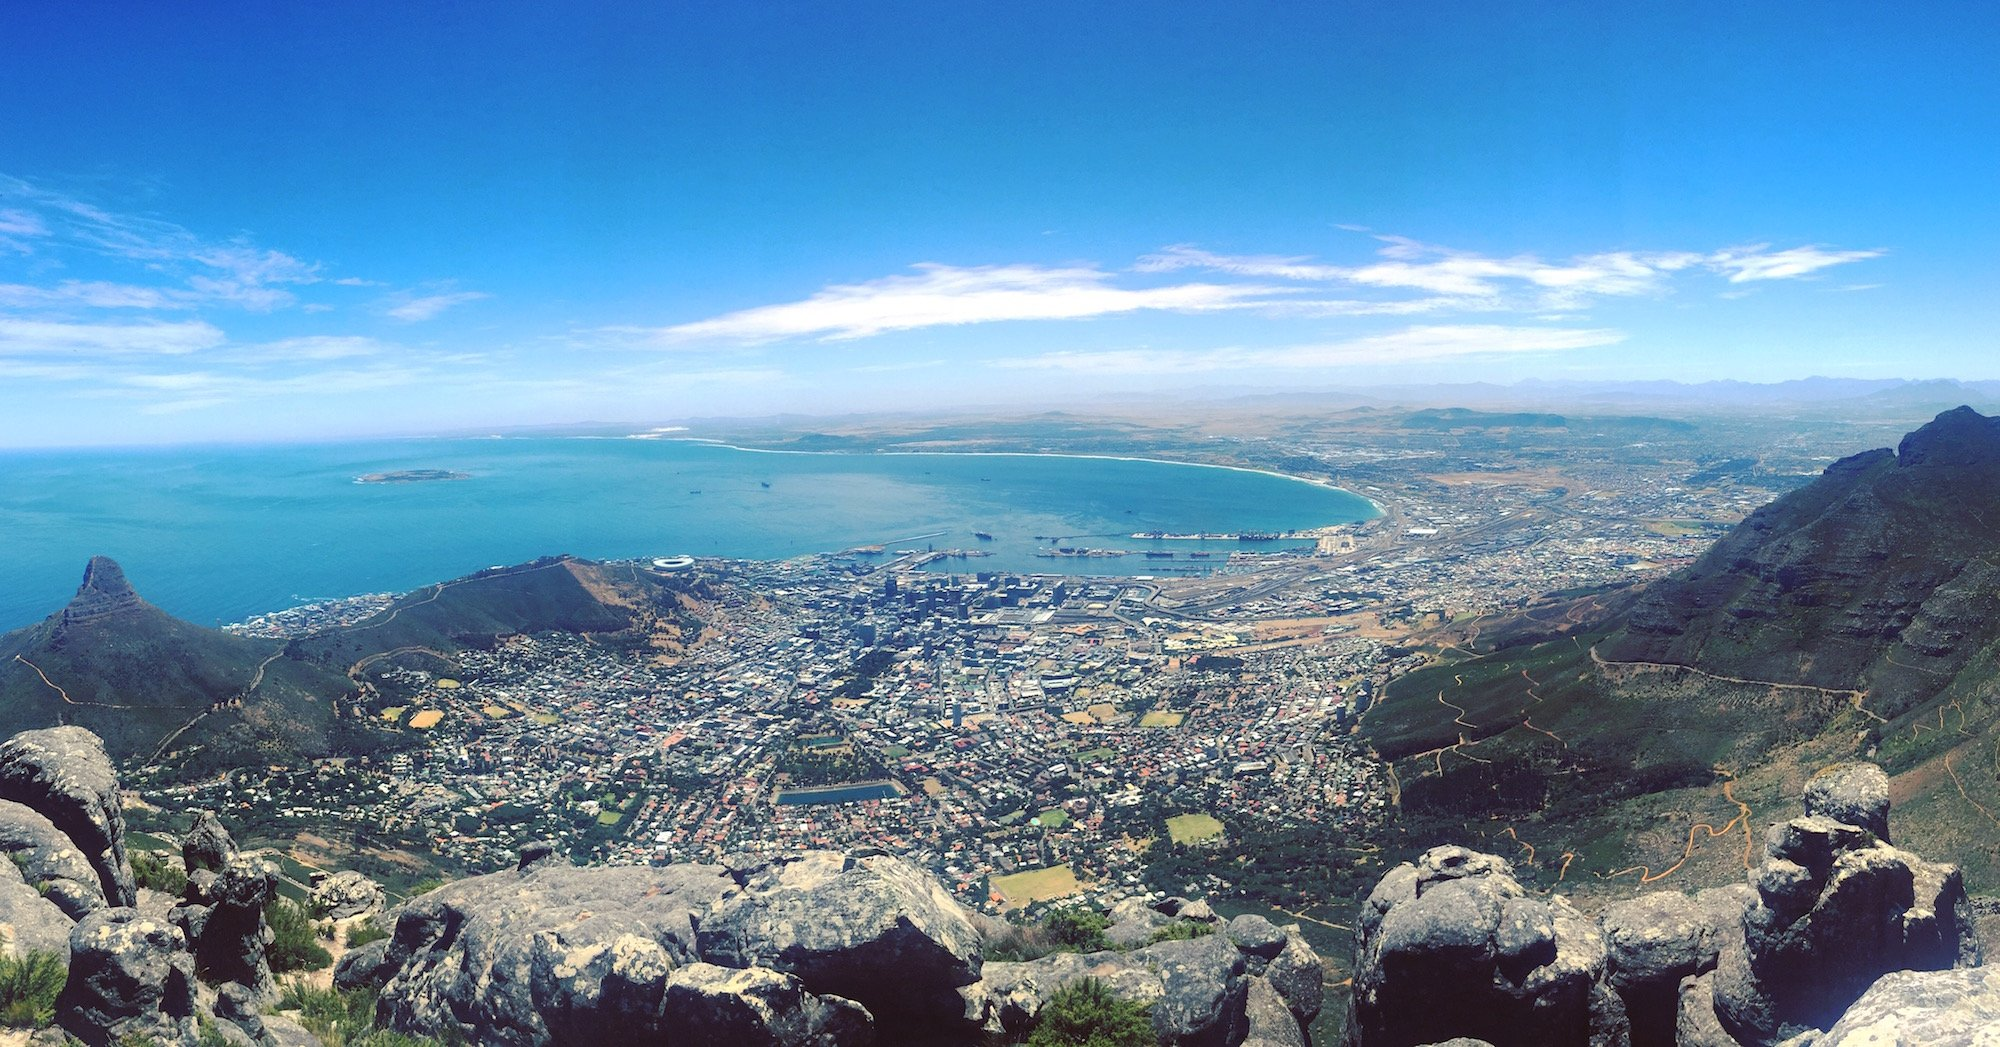 Top of Table Mountain View of Cape Town & Lion's Head